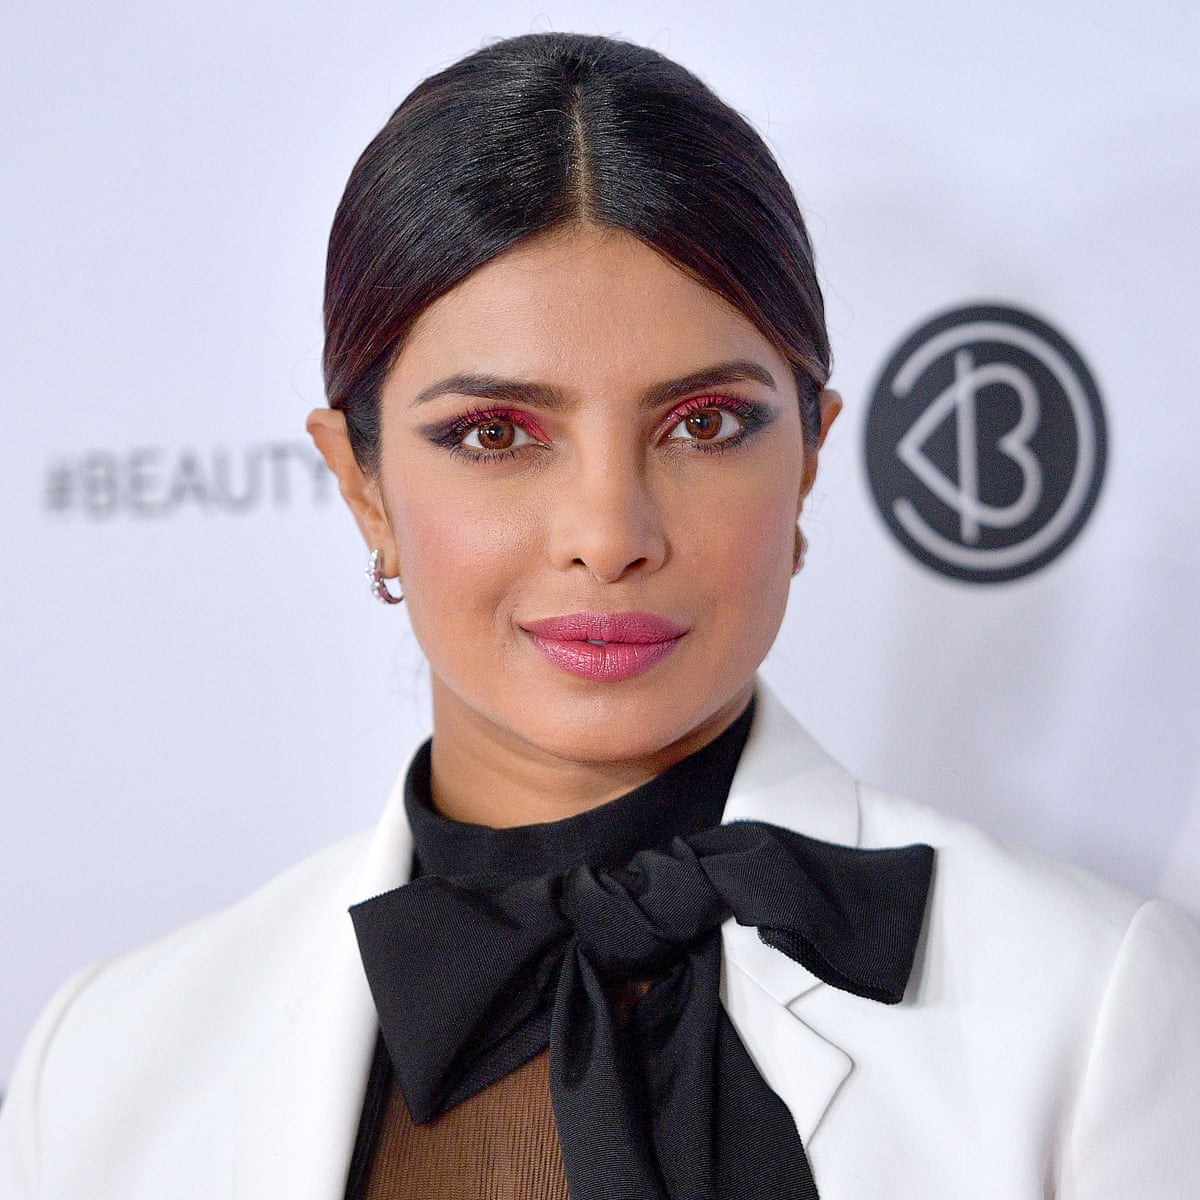 Priyanka Chopra accused of 'encouraging nuclear war' with Pakistan | World news | The Guardian